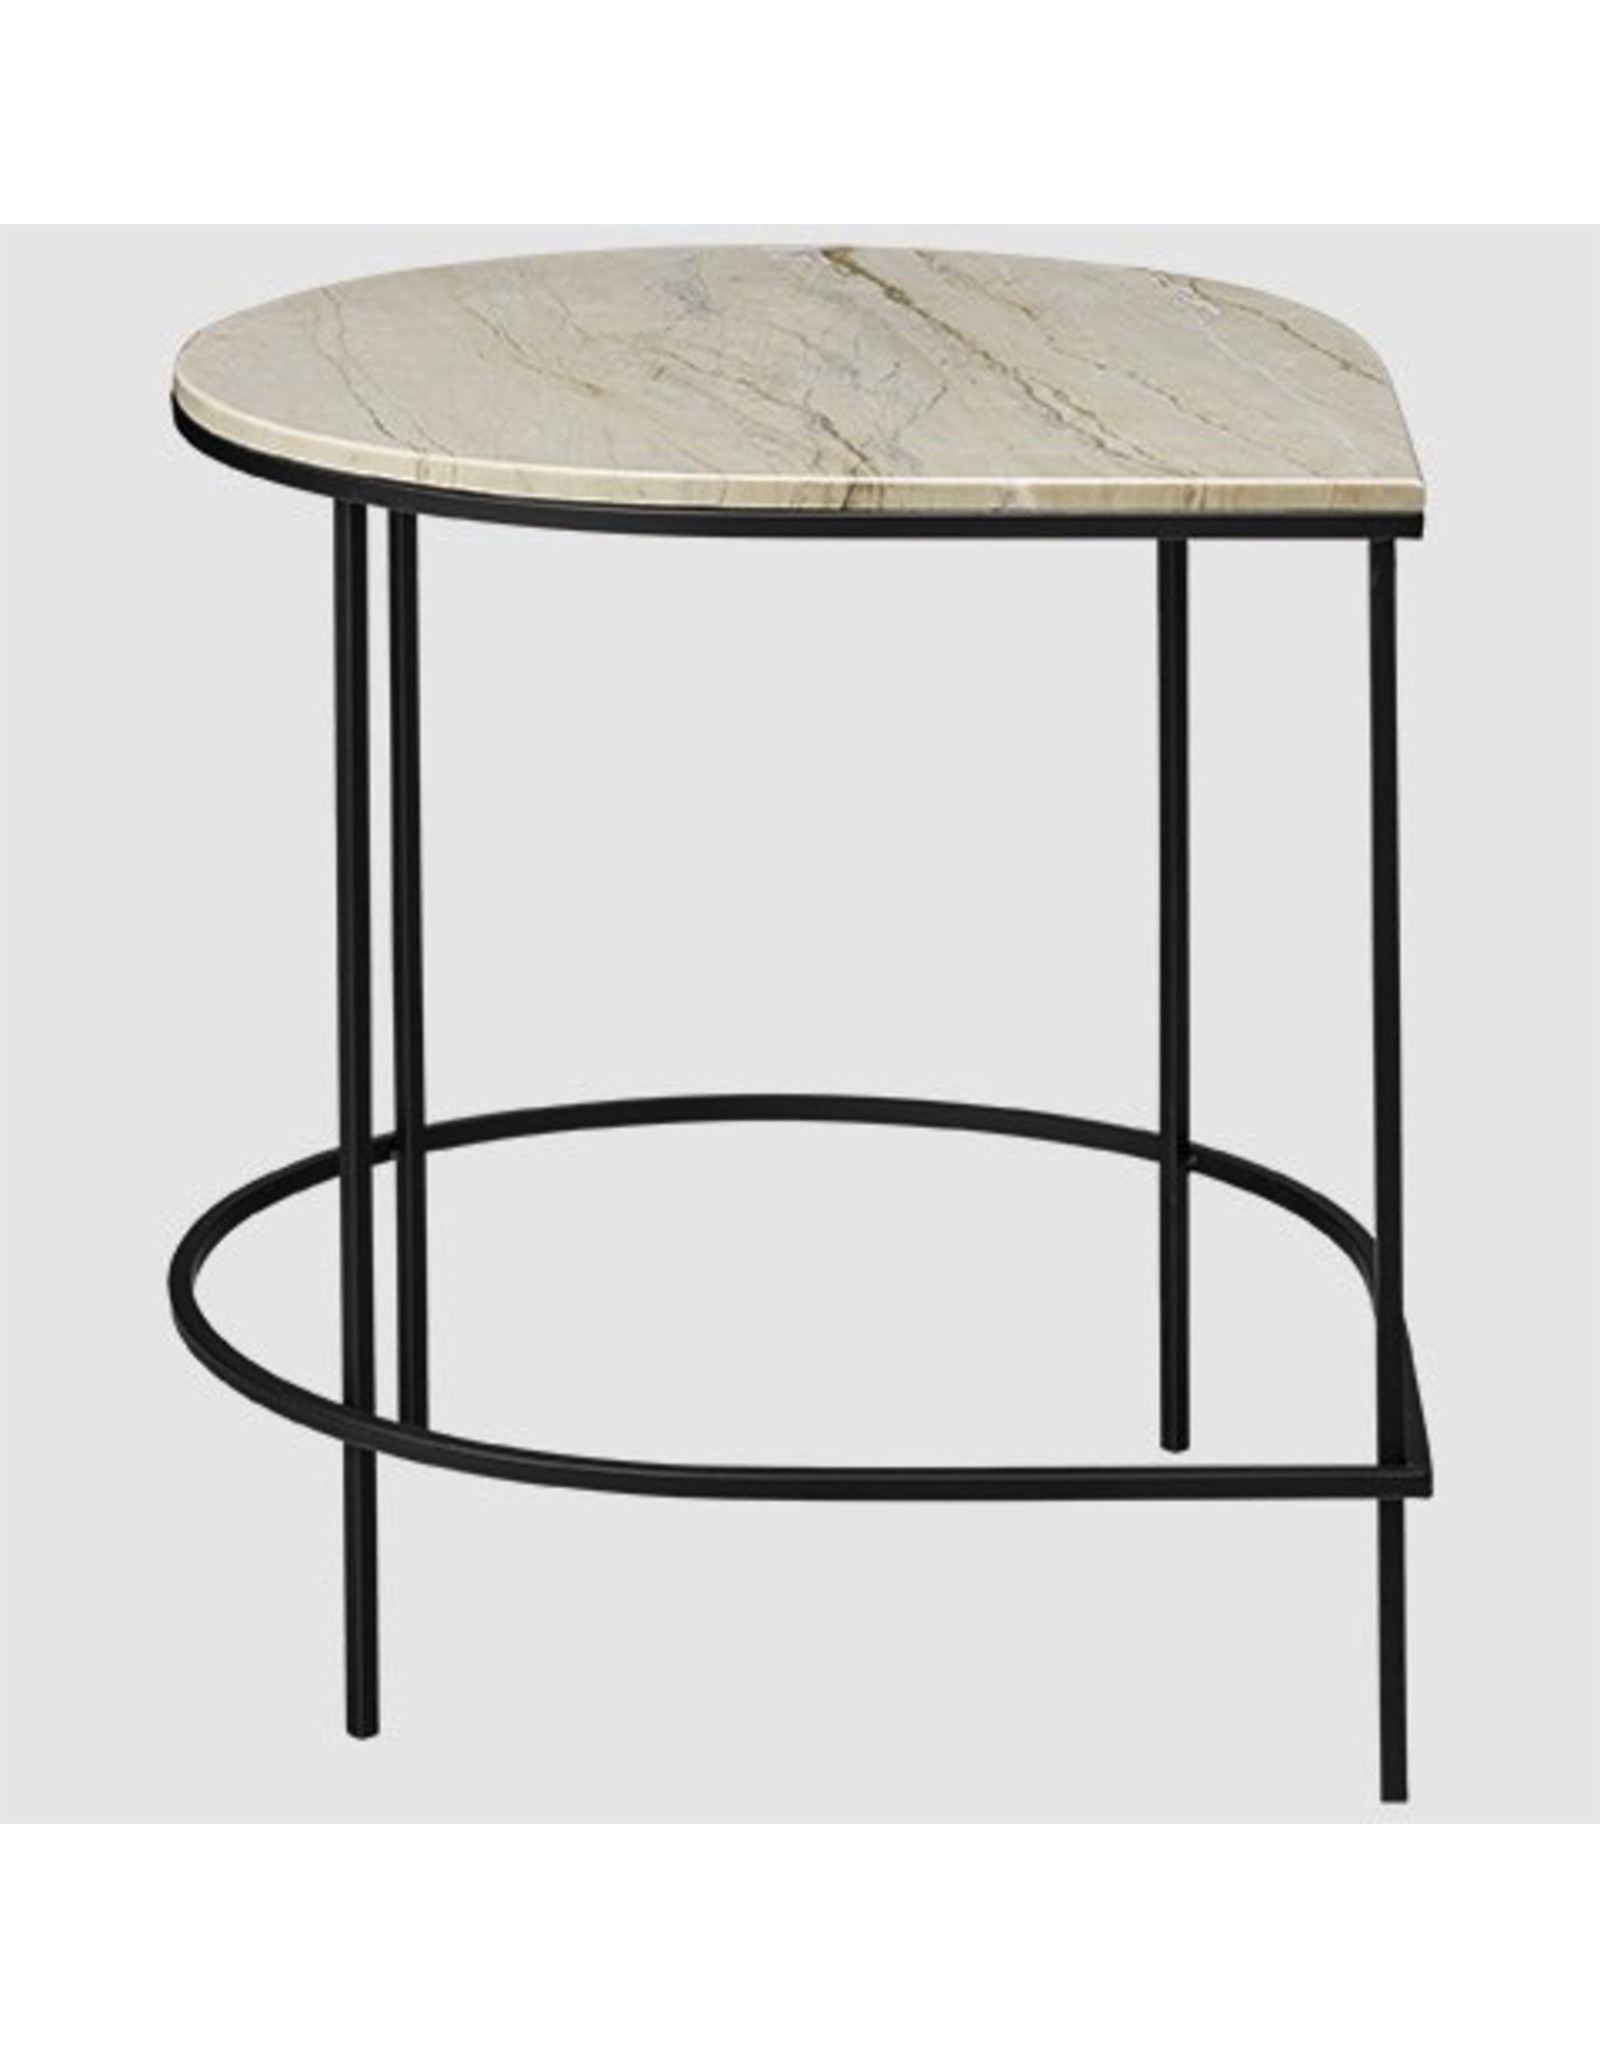 AYTM STILLA TABLE WITH MARBLE TOP SAND